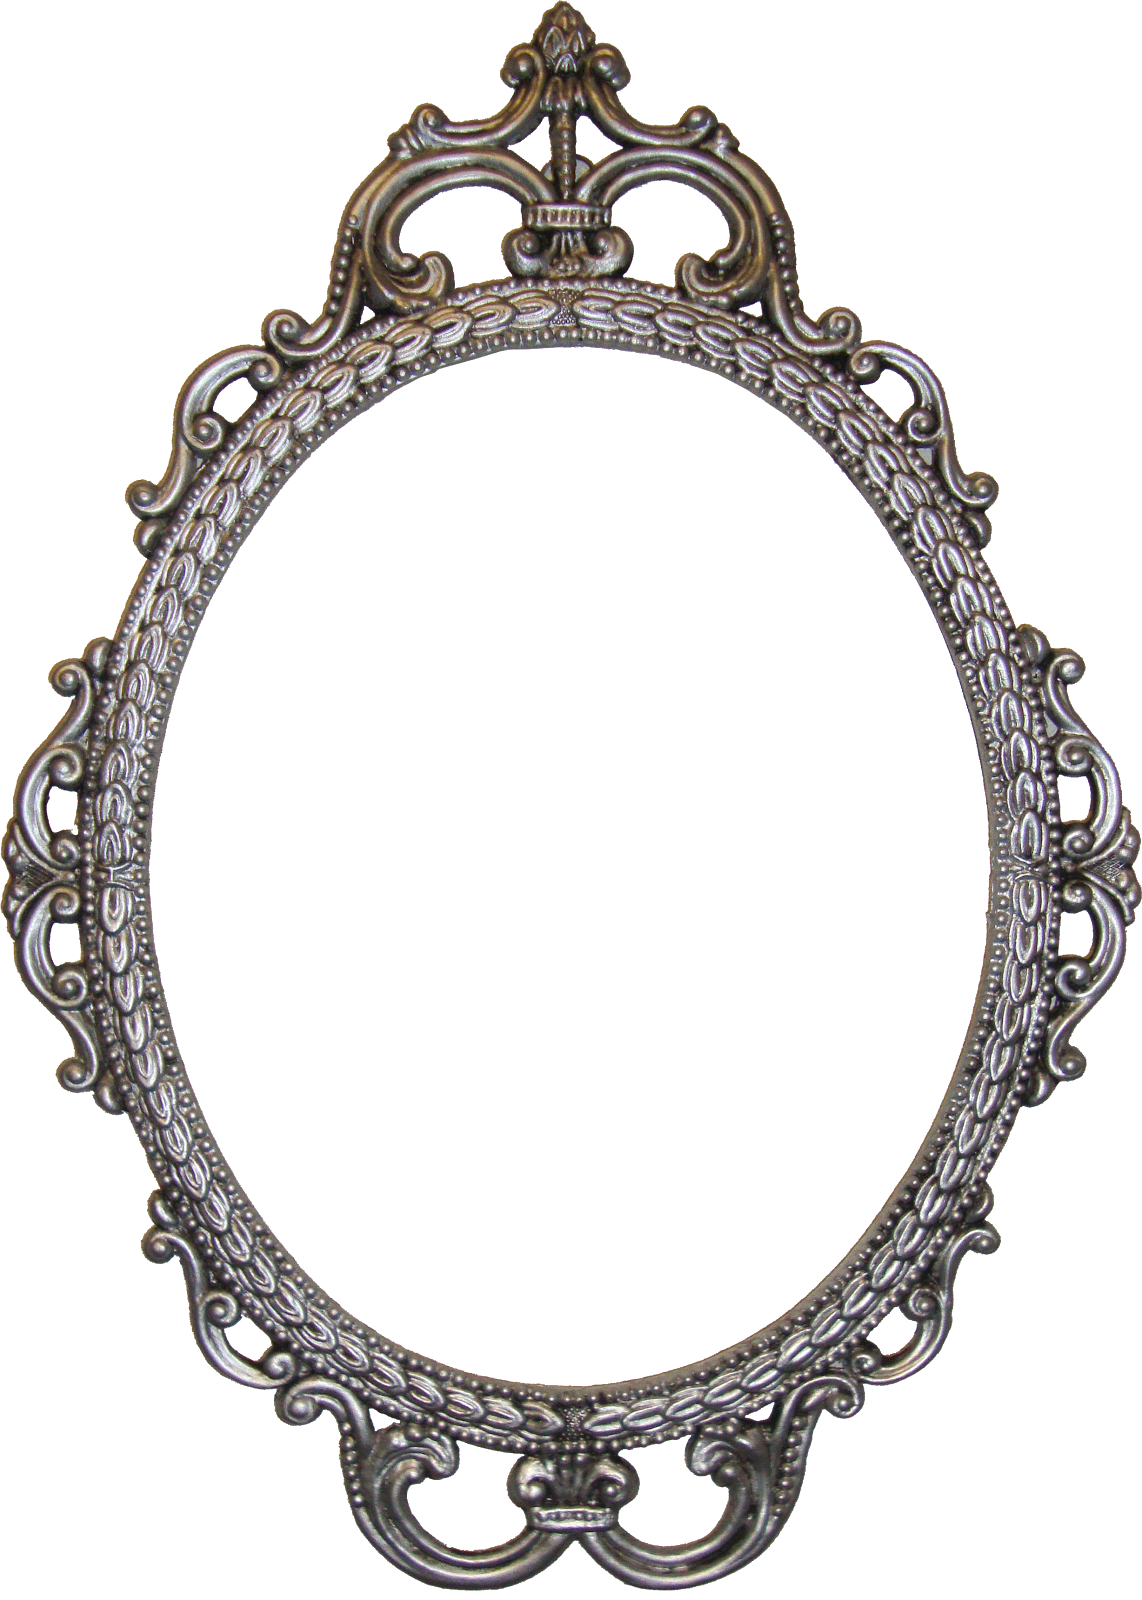 Drawn bugs ornate mirror Awesome them Frame Lots frames!